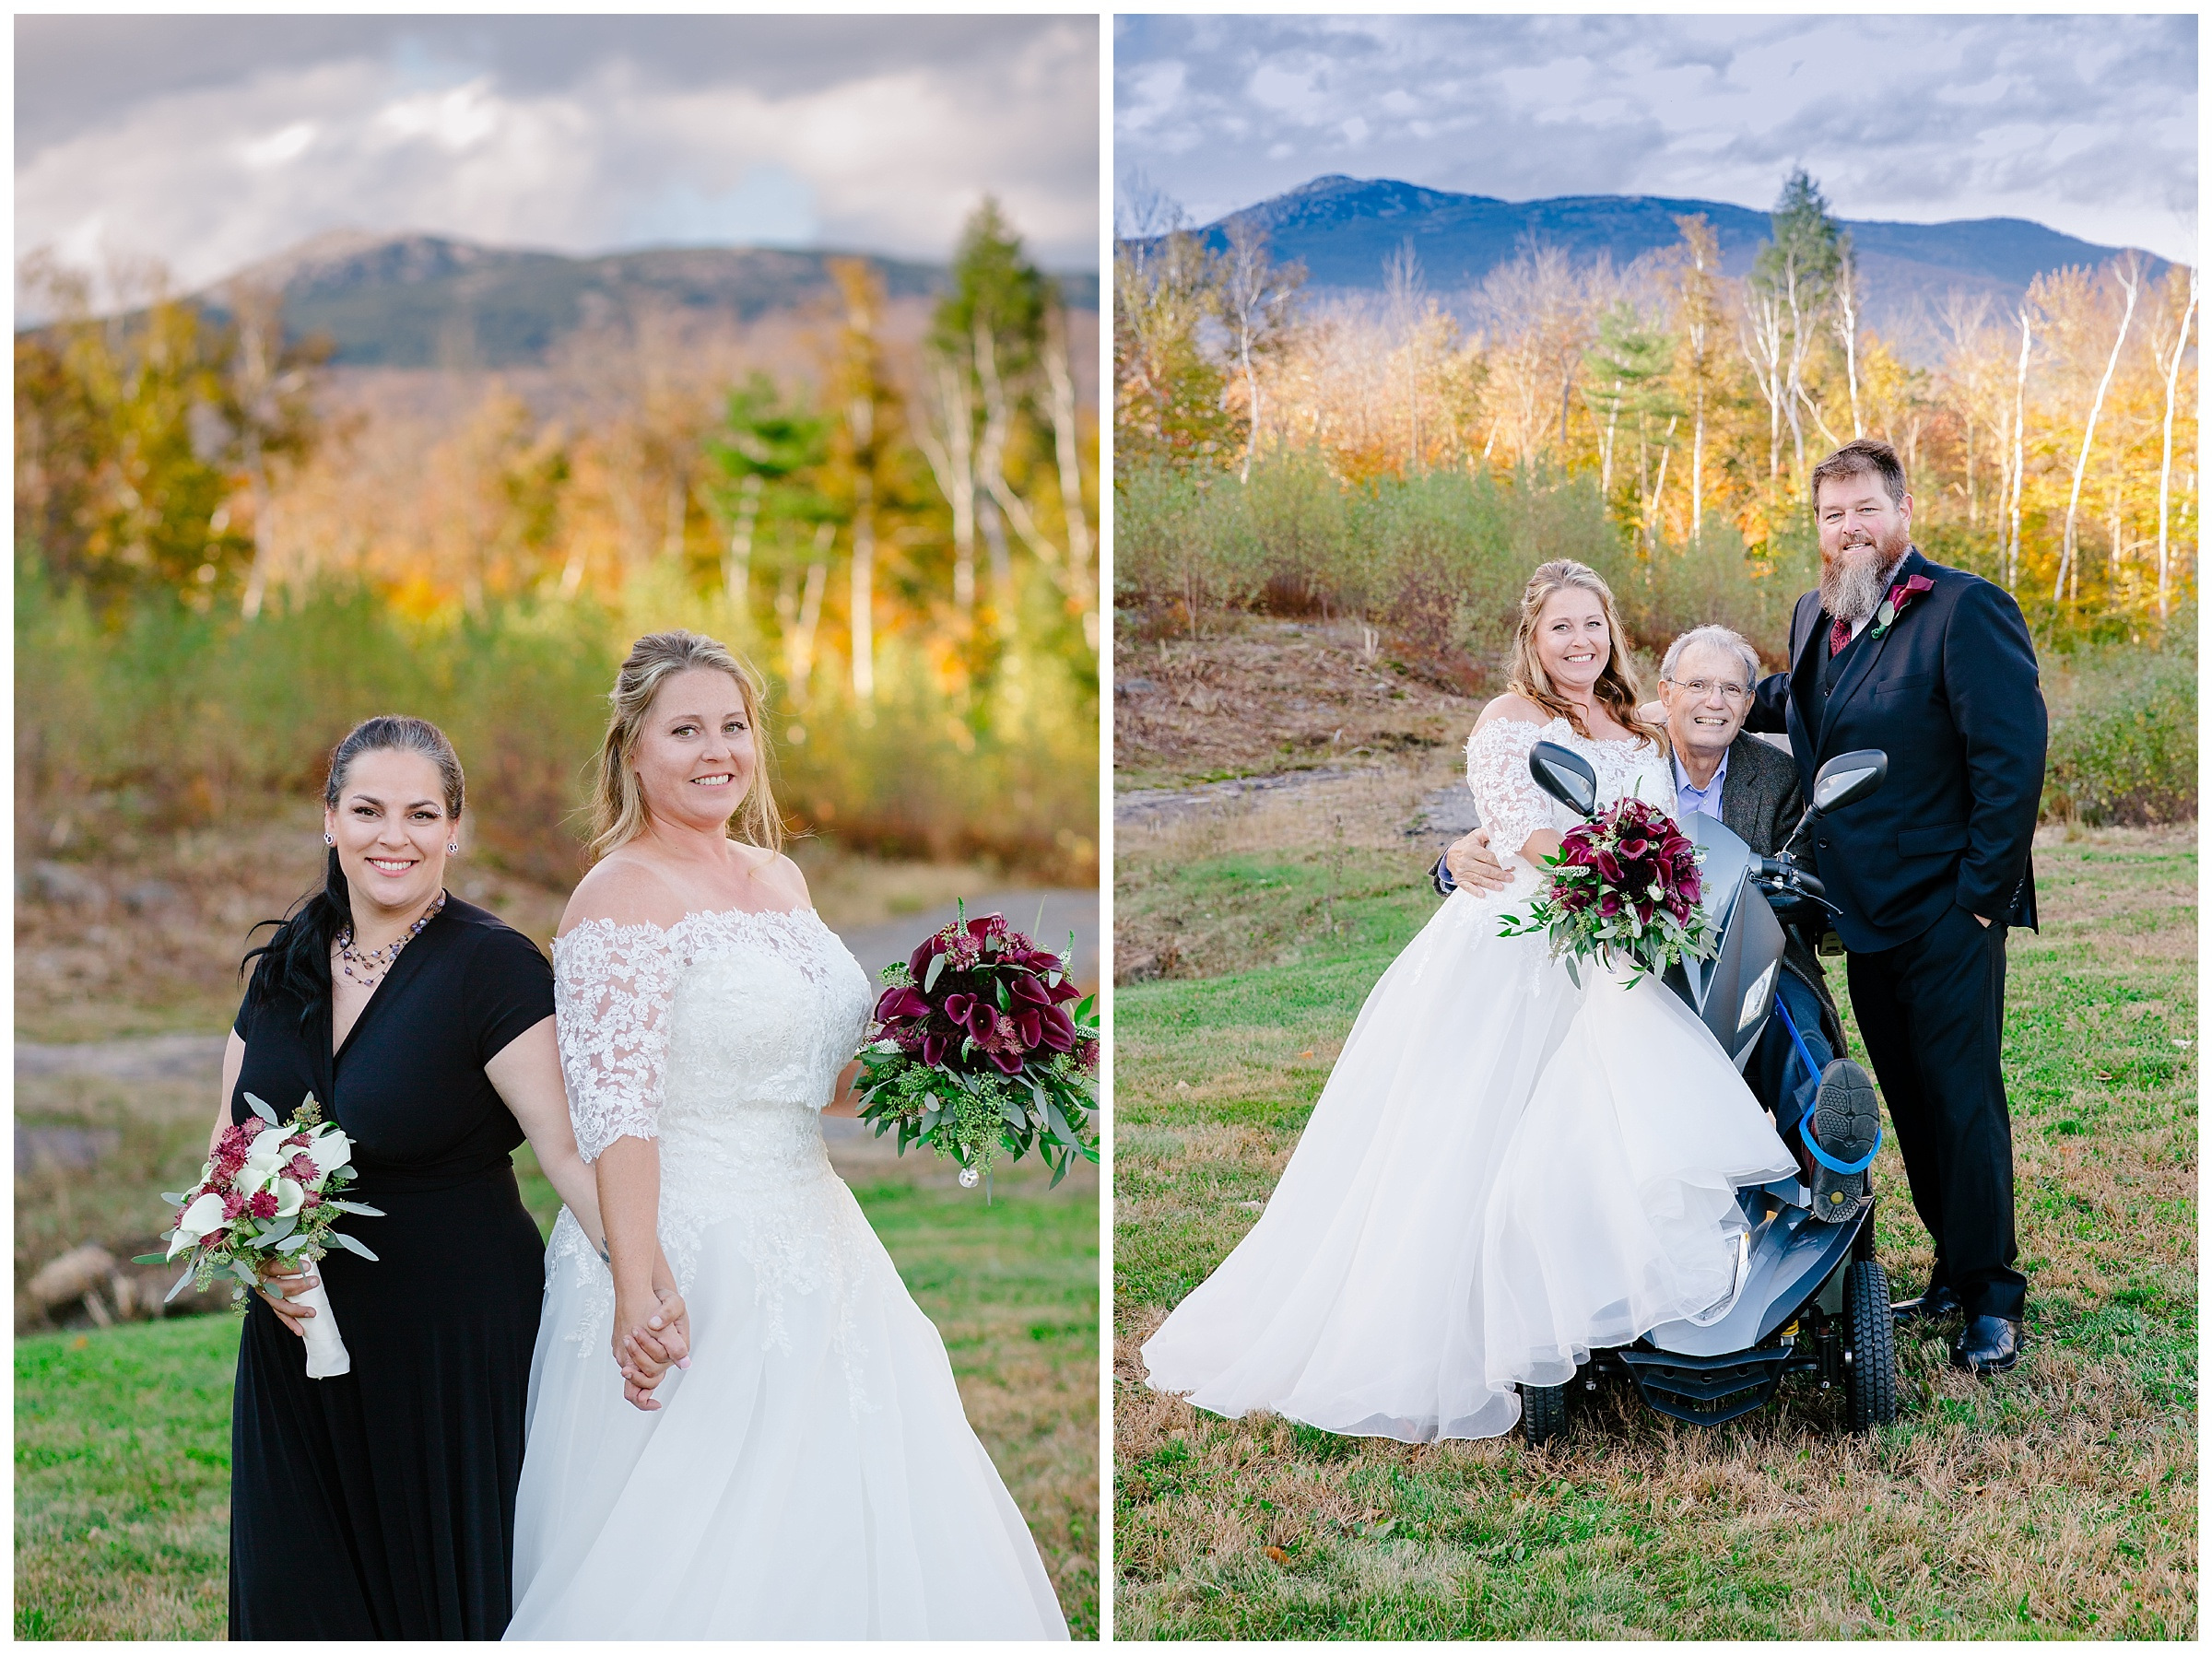 #atlast,#peard,Artistic,Autumn,BLM,Backyard wedding,Candid,Creative,Emily Barthel,Emma Barthel,Emma-John-Wedding,Fall,Fall Wedding,Great Road,Jaffrey,Jaffrey Wedding Photographer,John Peard,John Peard Jr,Mt. Monadnock,NH,NH Wedding,NH Wedding Photographer,Natural,New England,New England Wedding,New Hampshire,New Hampshire Wedding Photographer,Oct,October,Photo,Photographer,Photography,Photojournalistic,Private Venue,Professional,Professional Wedding Photography,Vivid,Wedding,Wedding Photography,Wedding Photography Packages,www.blmphoto.com,©BLM Photography 2018,